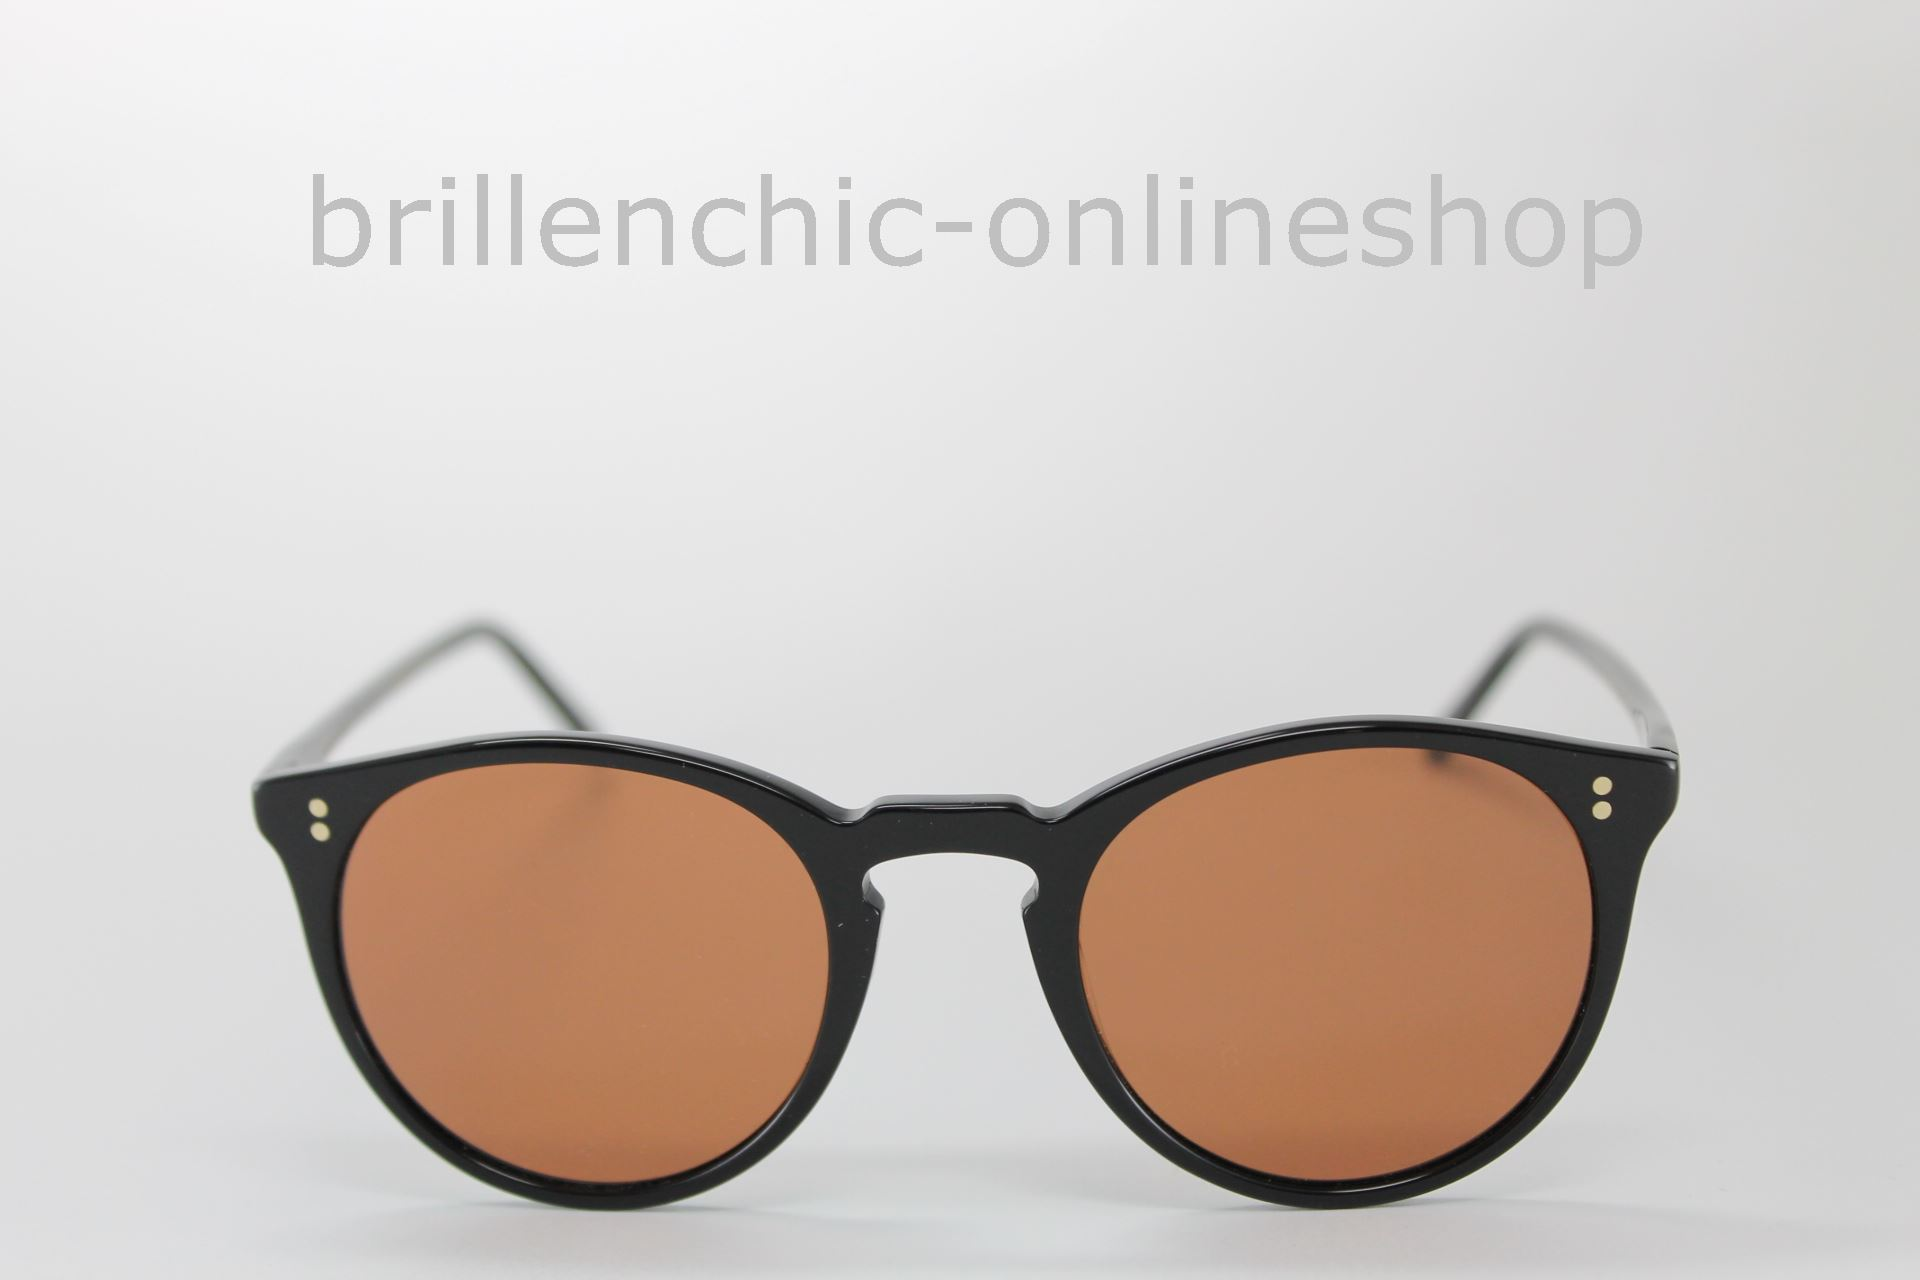 cd6b35e468d Brillenchic-onlineshop in Berlin - OLIVER PEOPLES O MALLEY NYC OV ...